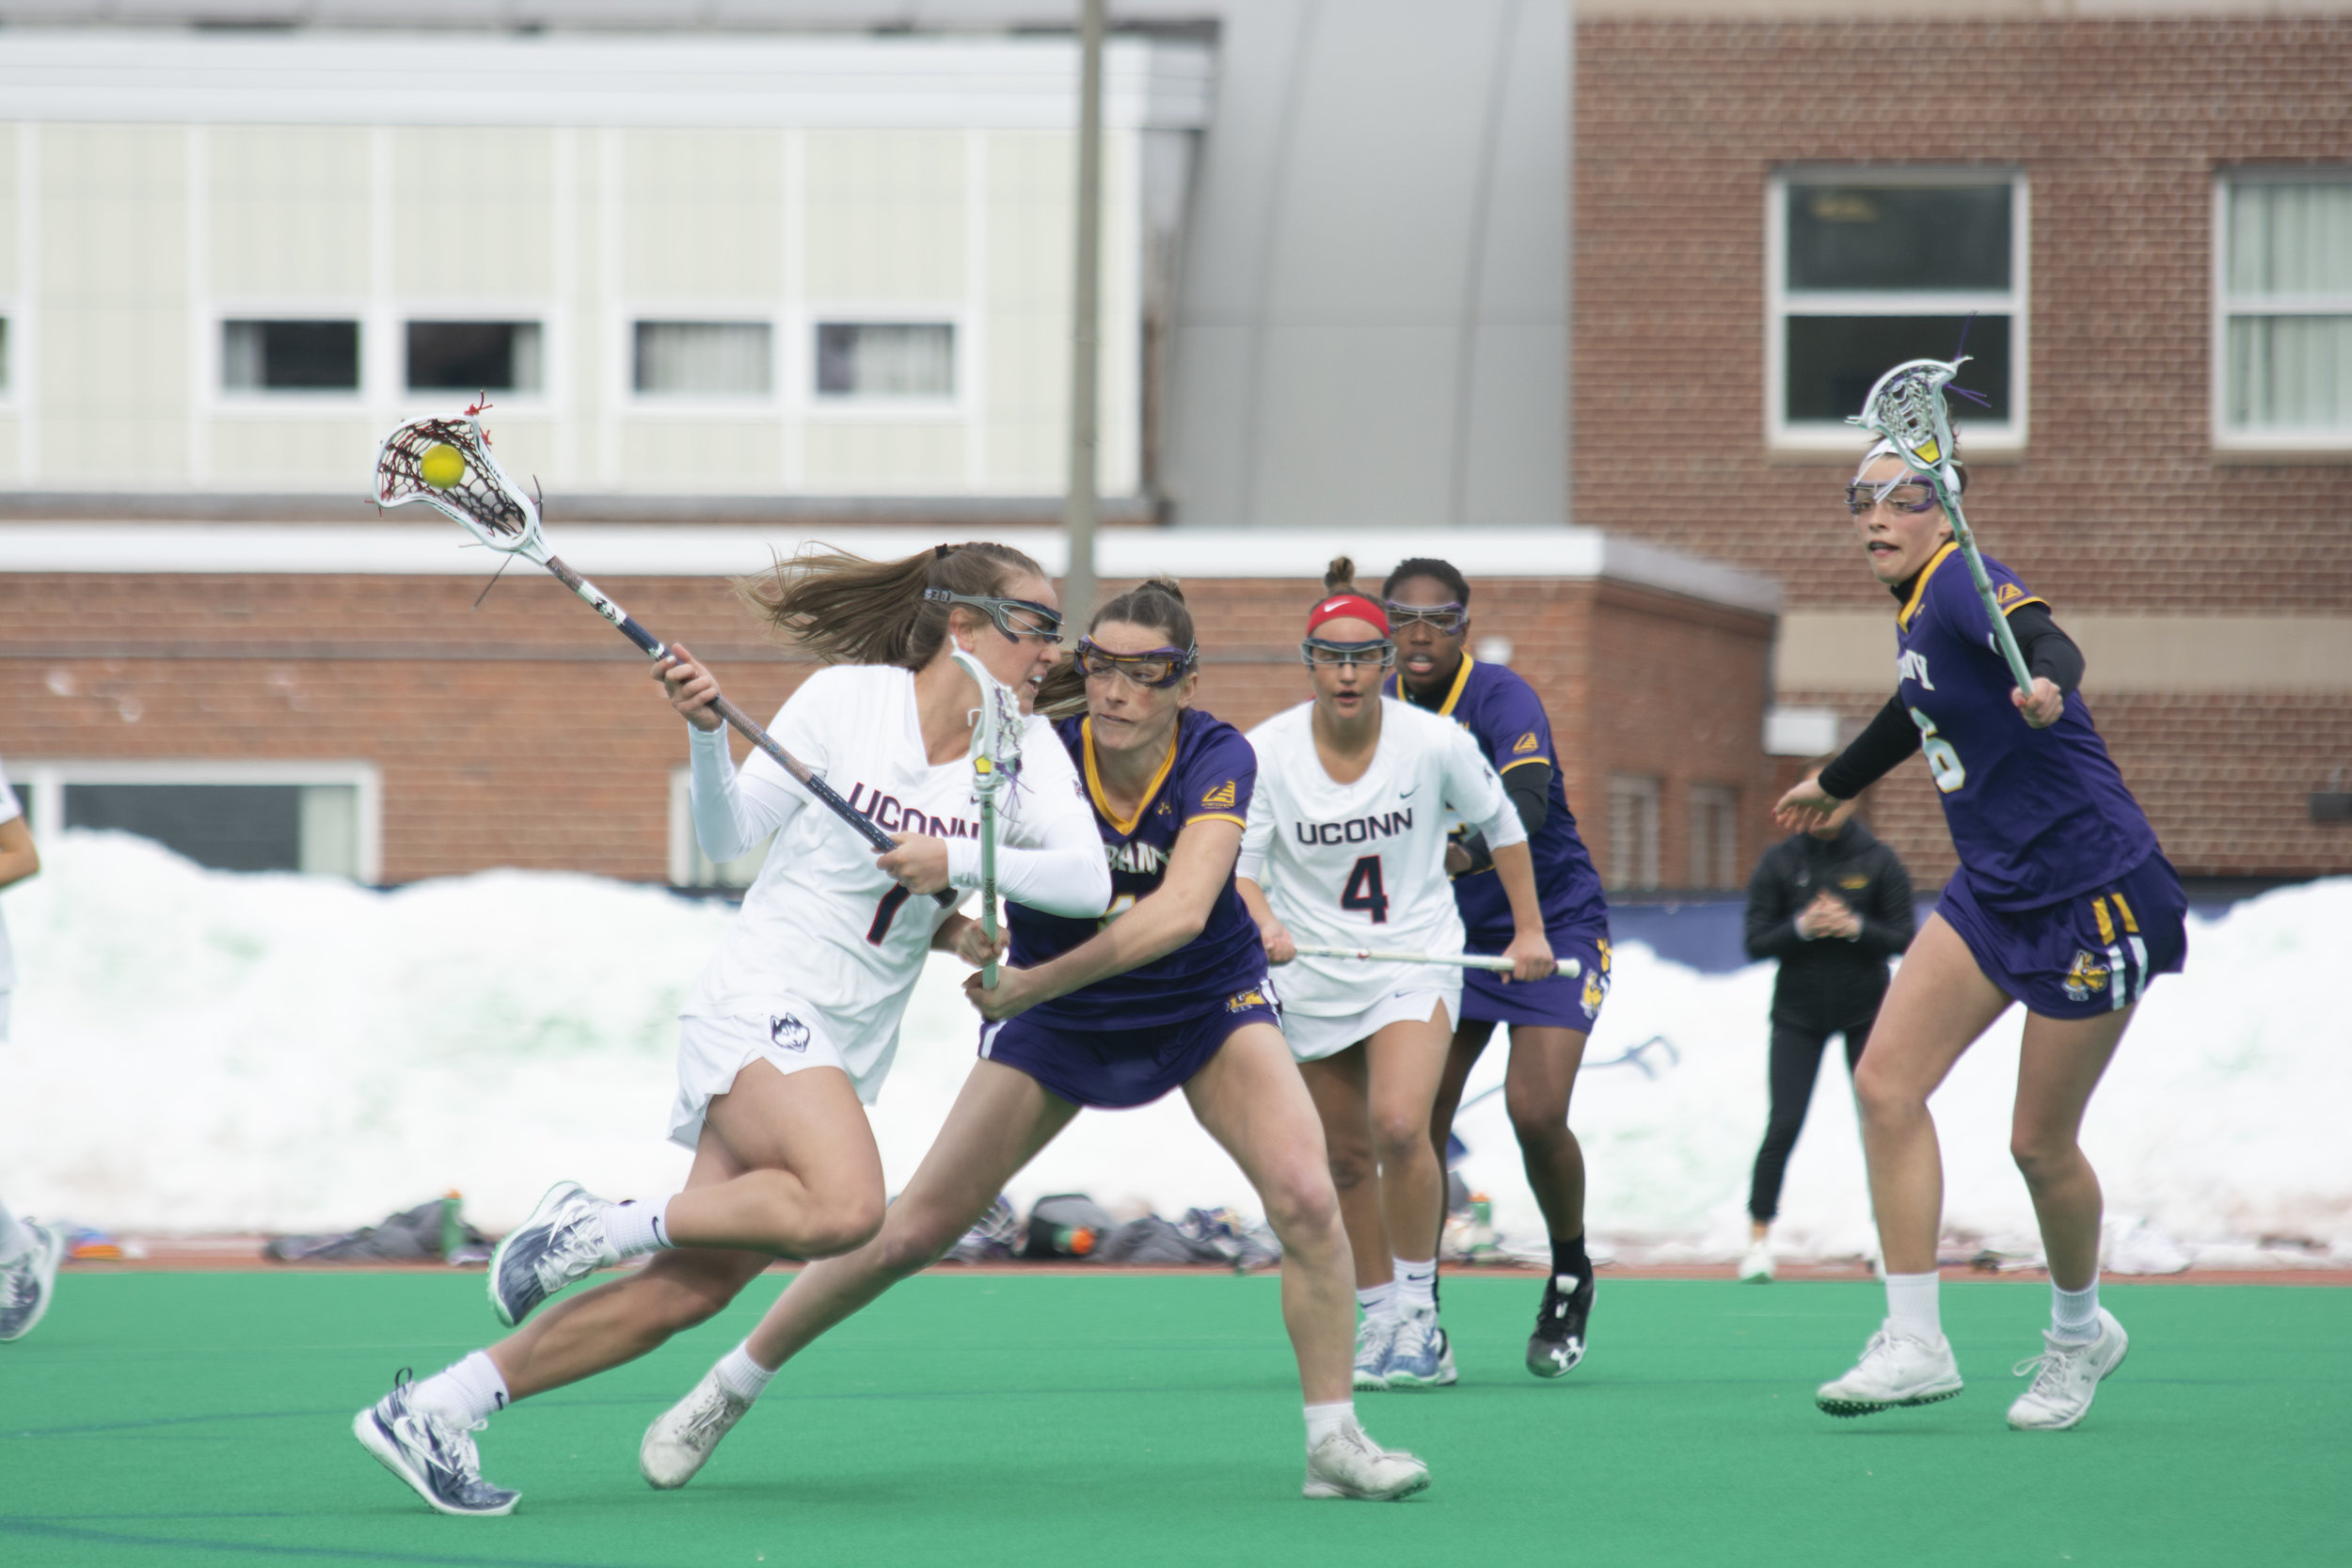 The UConn women's lacrosse team was able to get its first win of the season on Wednesday afternoon. Photo by Nicholas Hampton/The Daily Campus